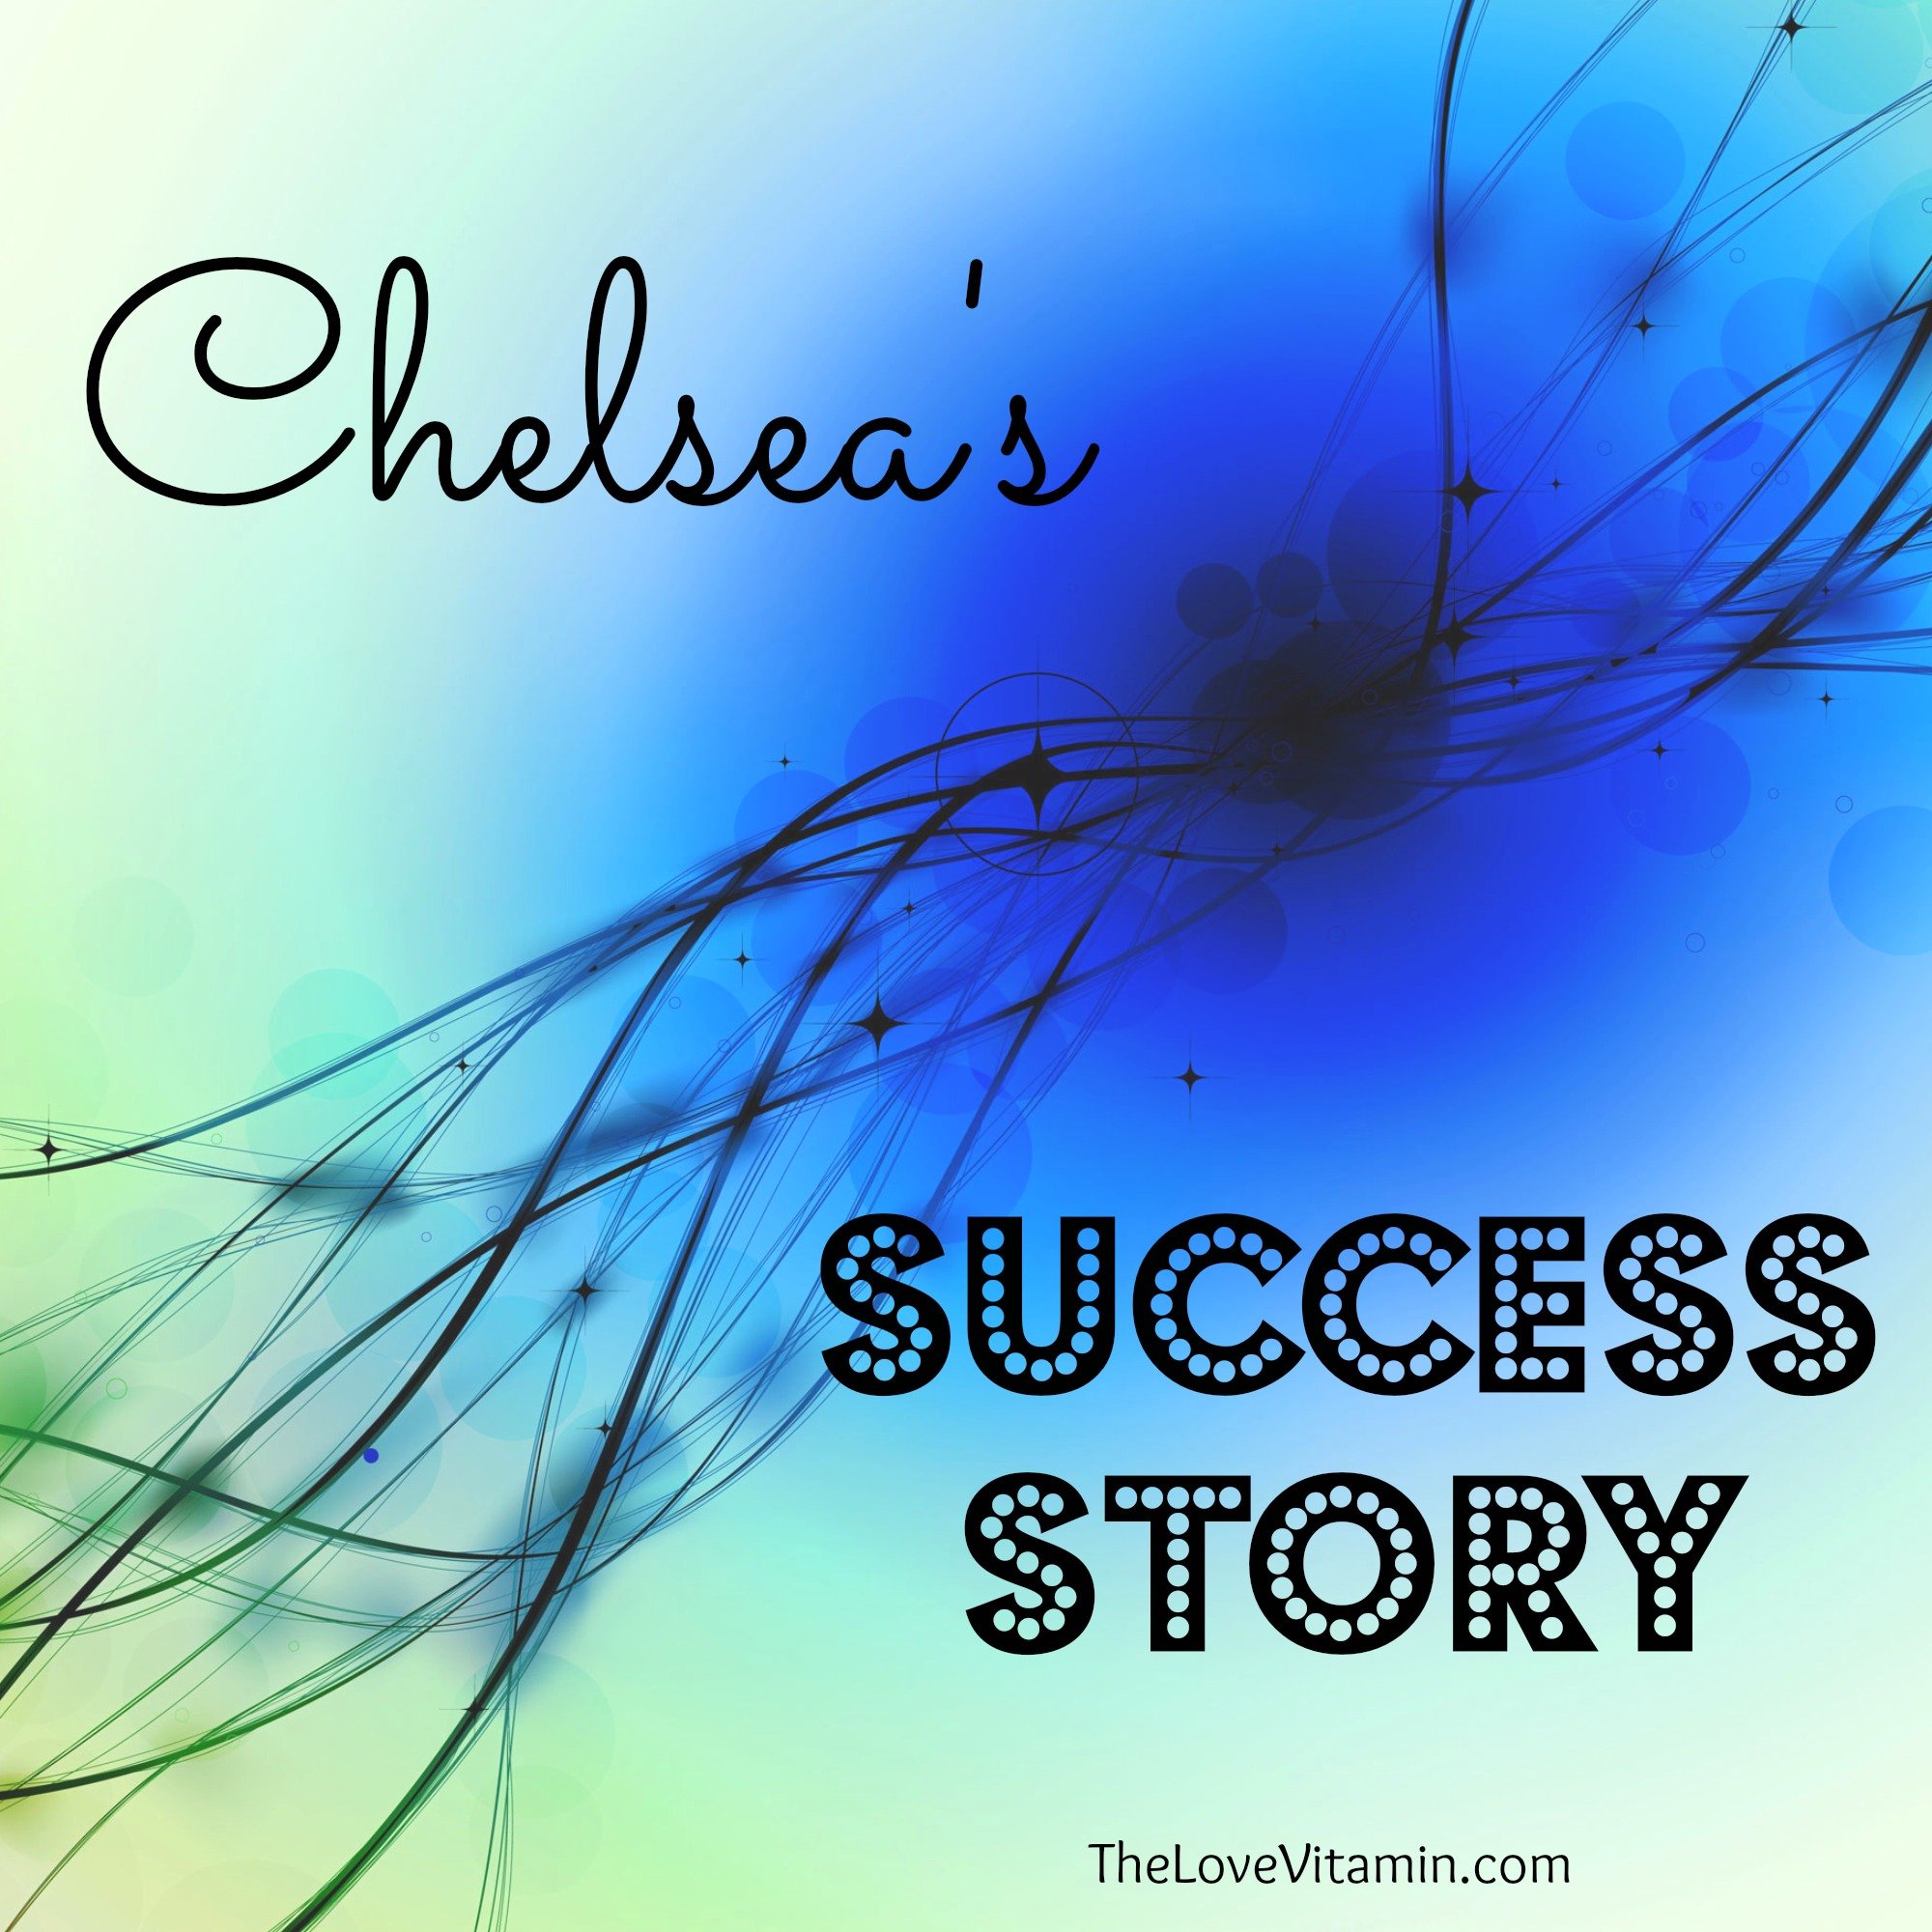 Chelsea's success story